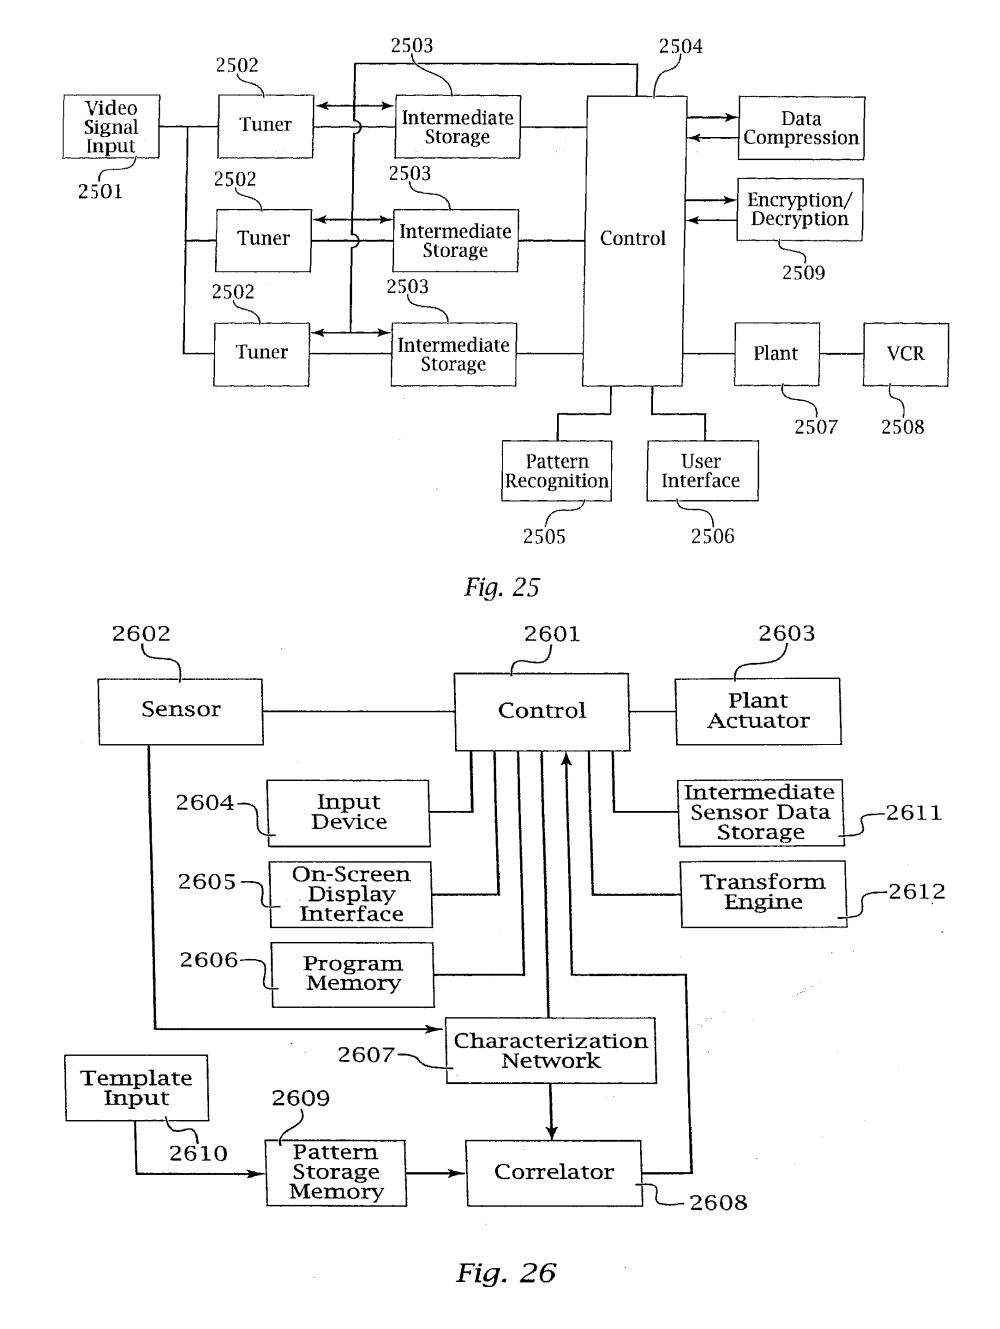 medium resolution of us20140089241a1 system and method for intermachine markup language communications google patents